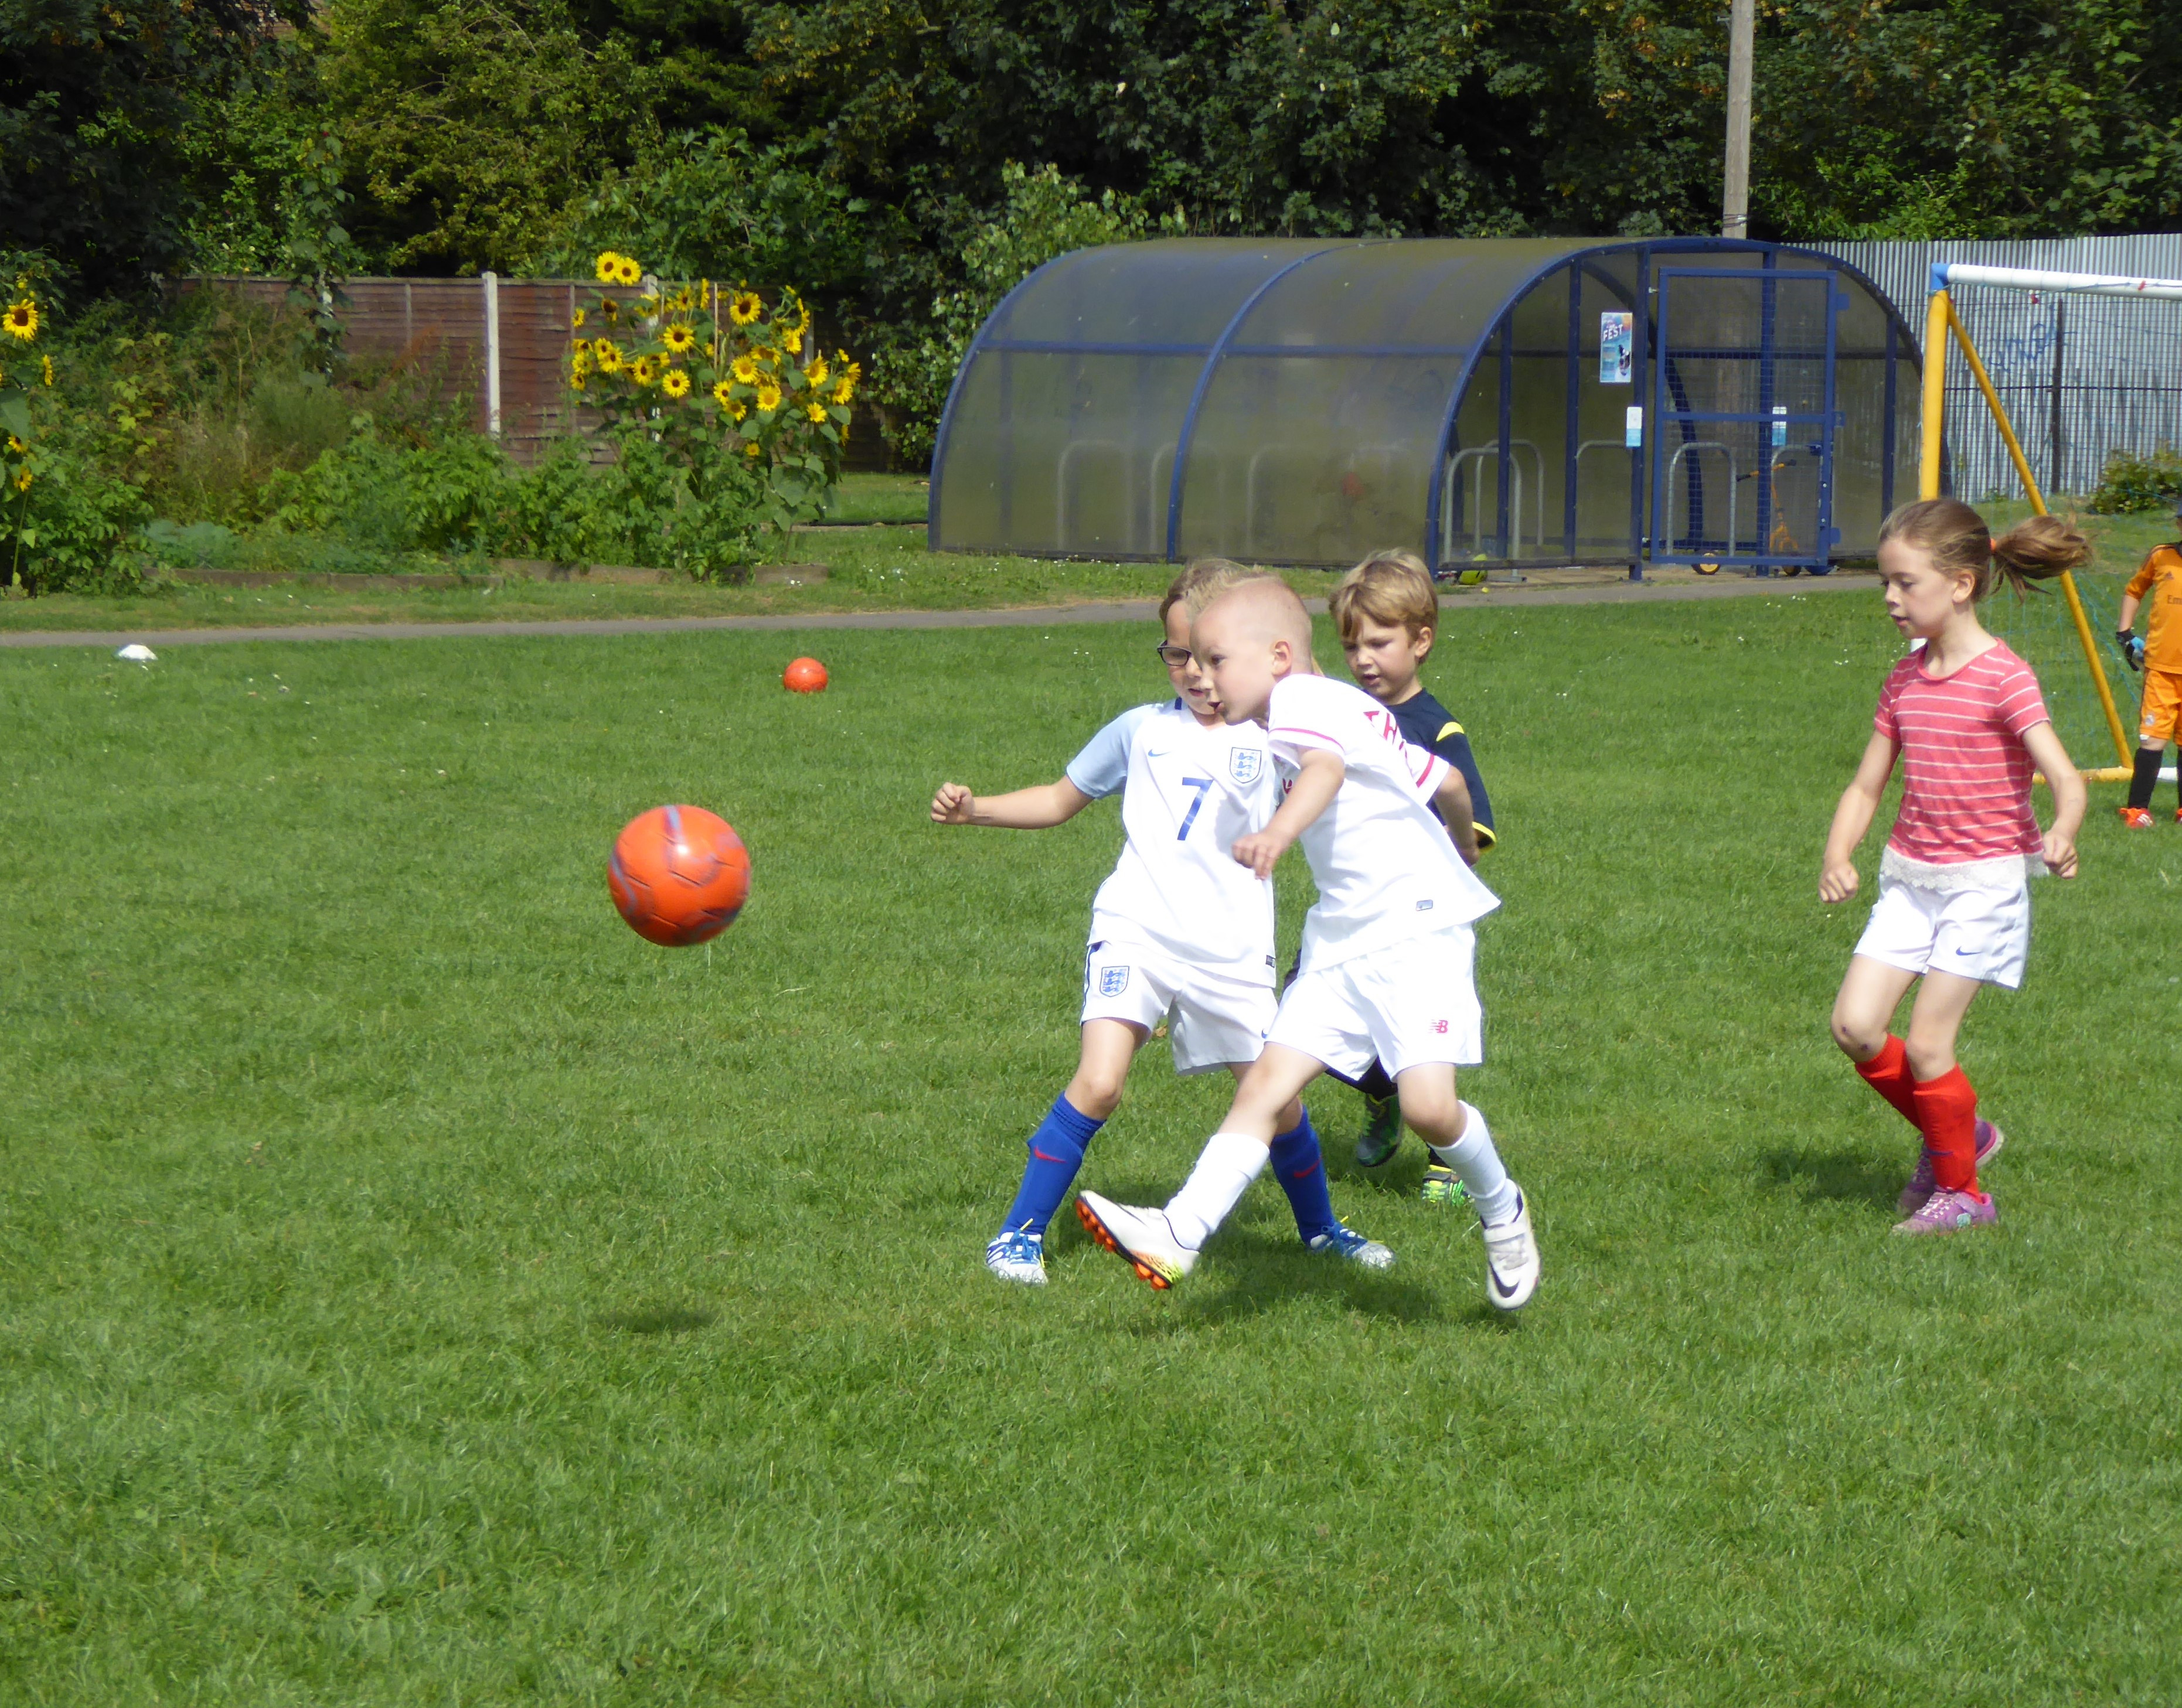 Saturday Football for 5 & 6 Yrs Old